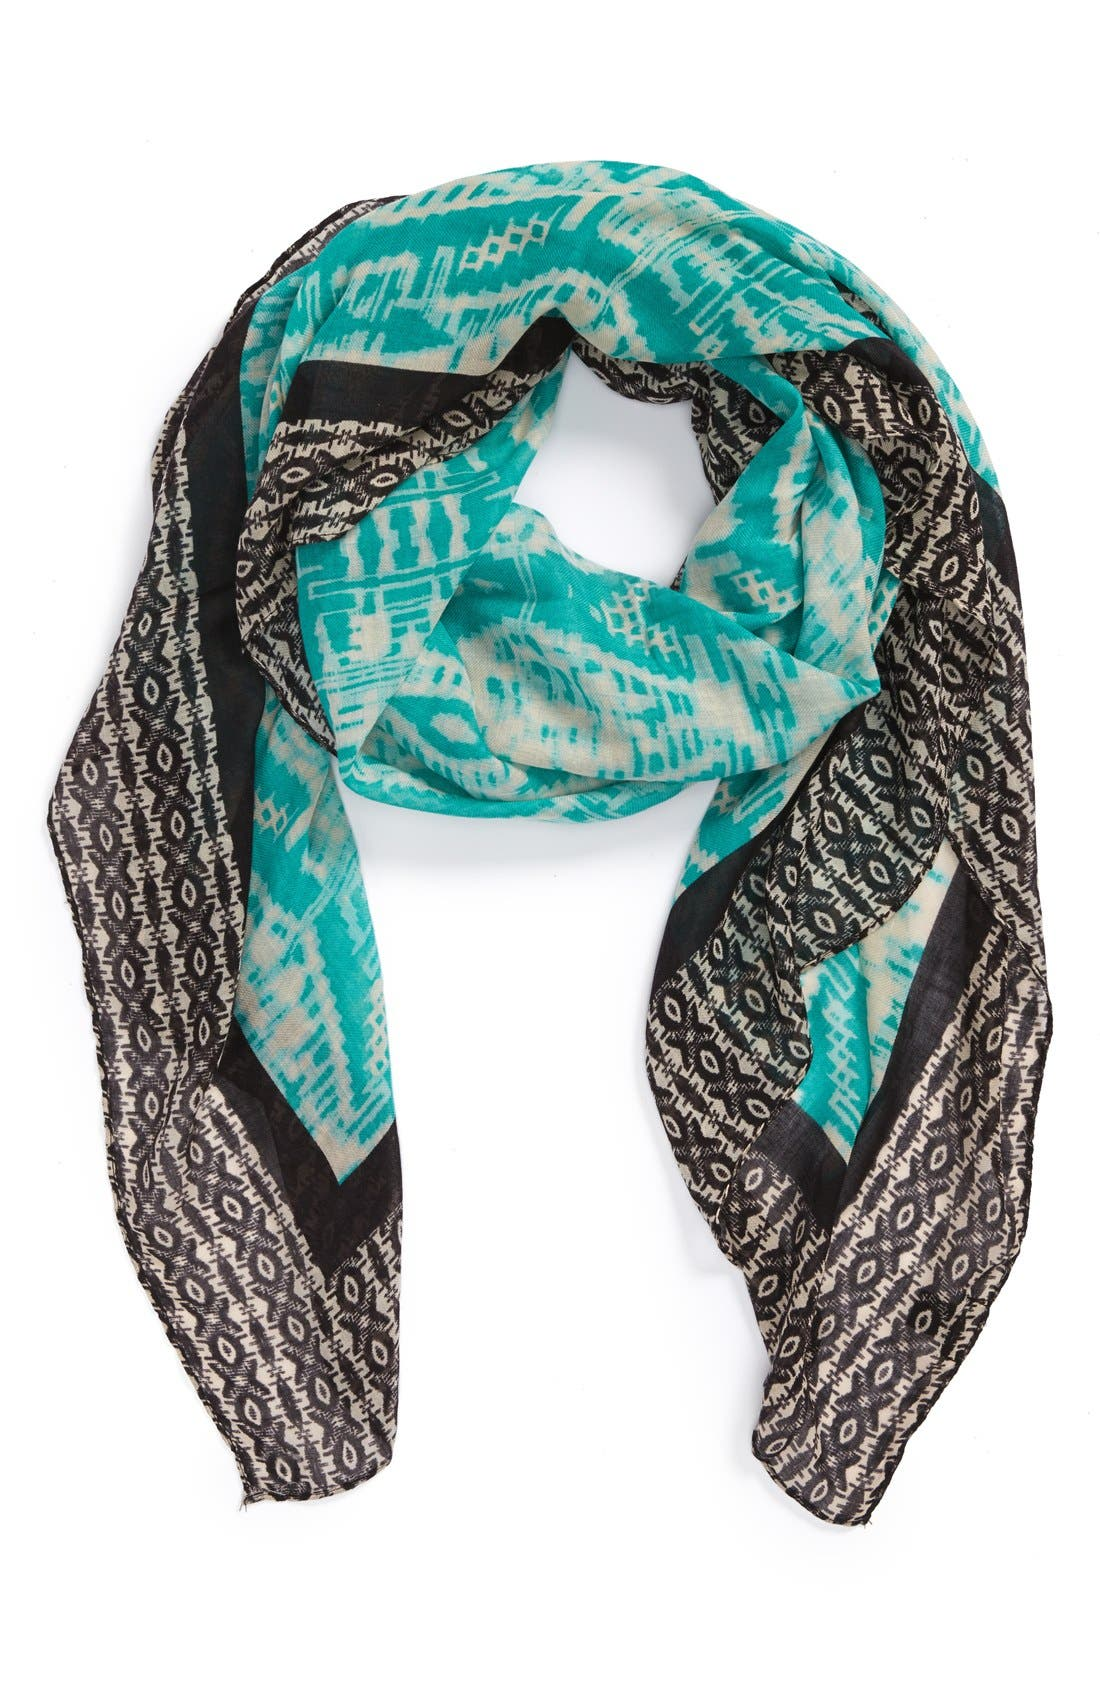 Alternate Image 1 Selected - Roffe Accessories 'World Traveler' Scarf